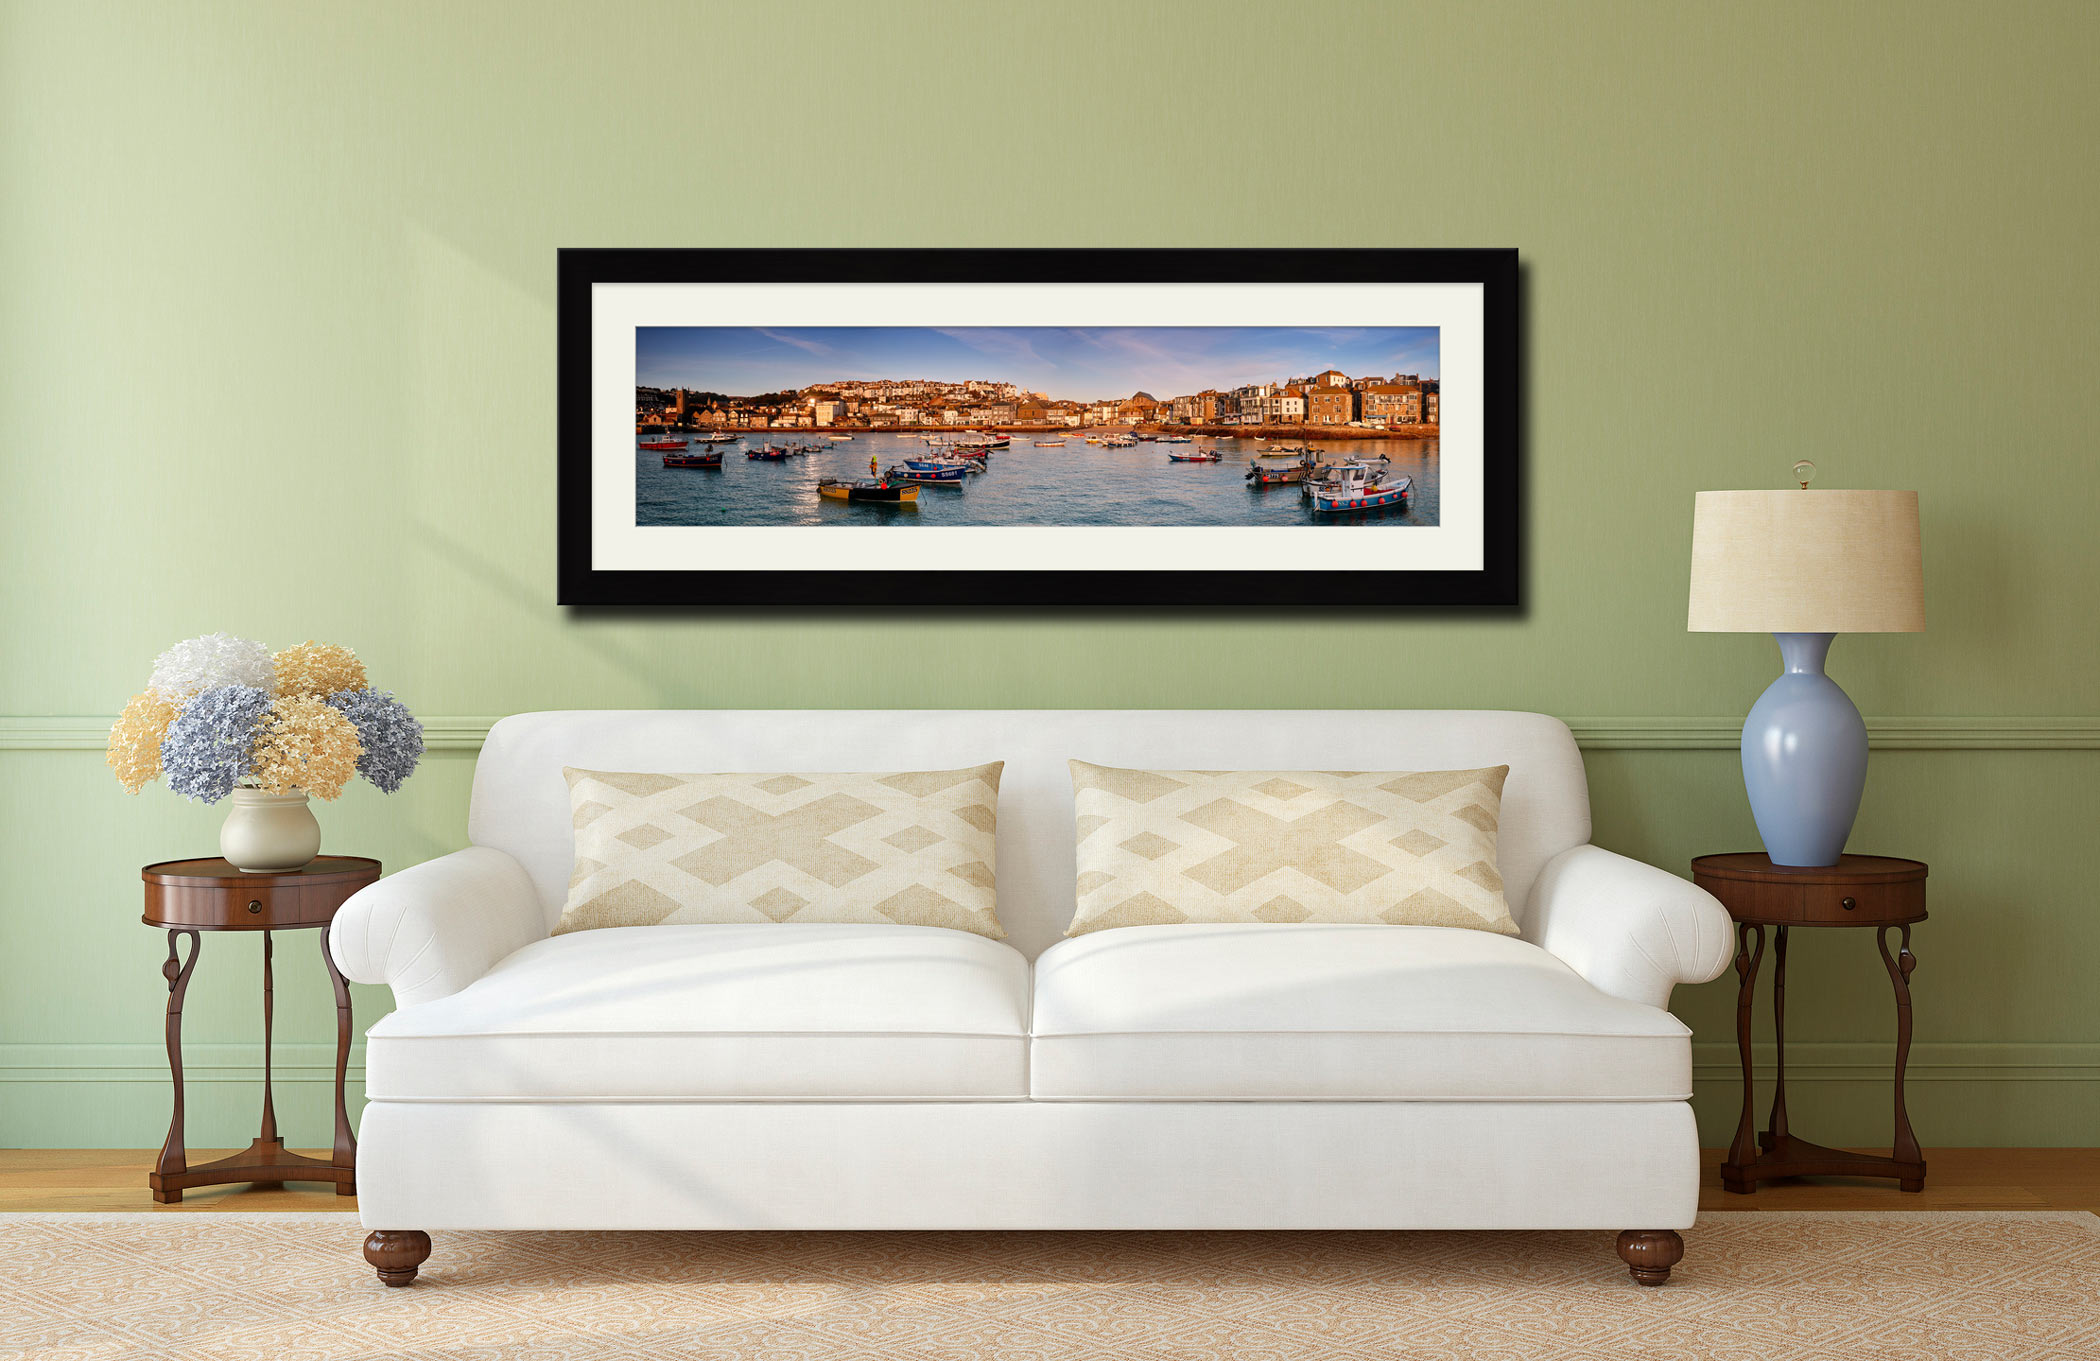 St Ives Harbour Morning Light - Framed Print with Mount on Wall